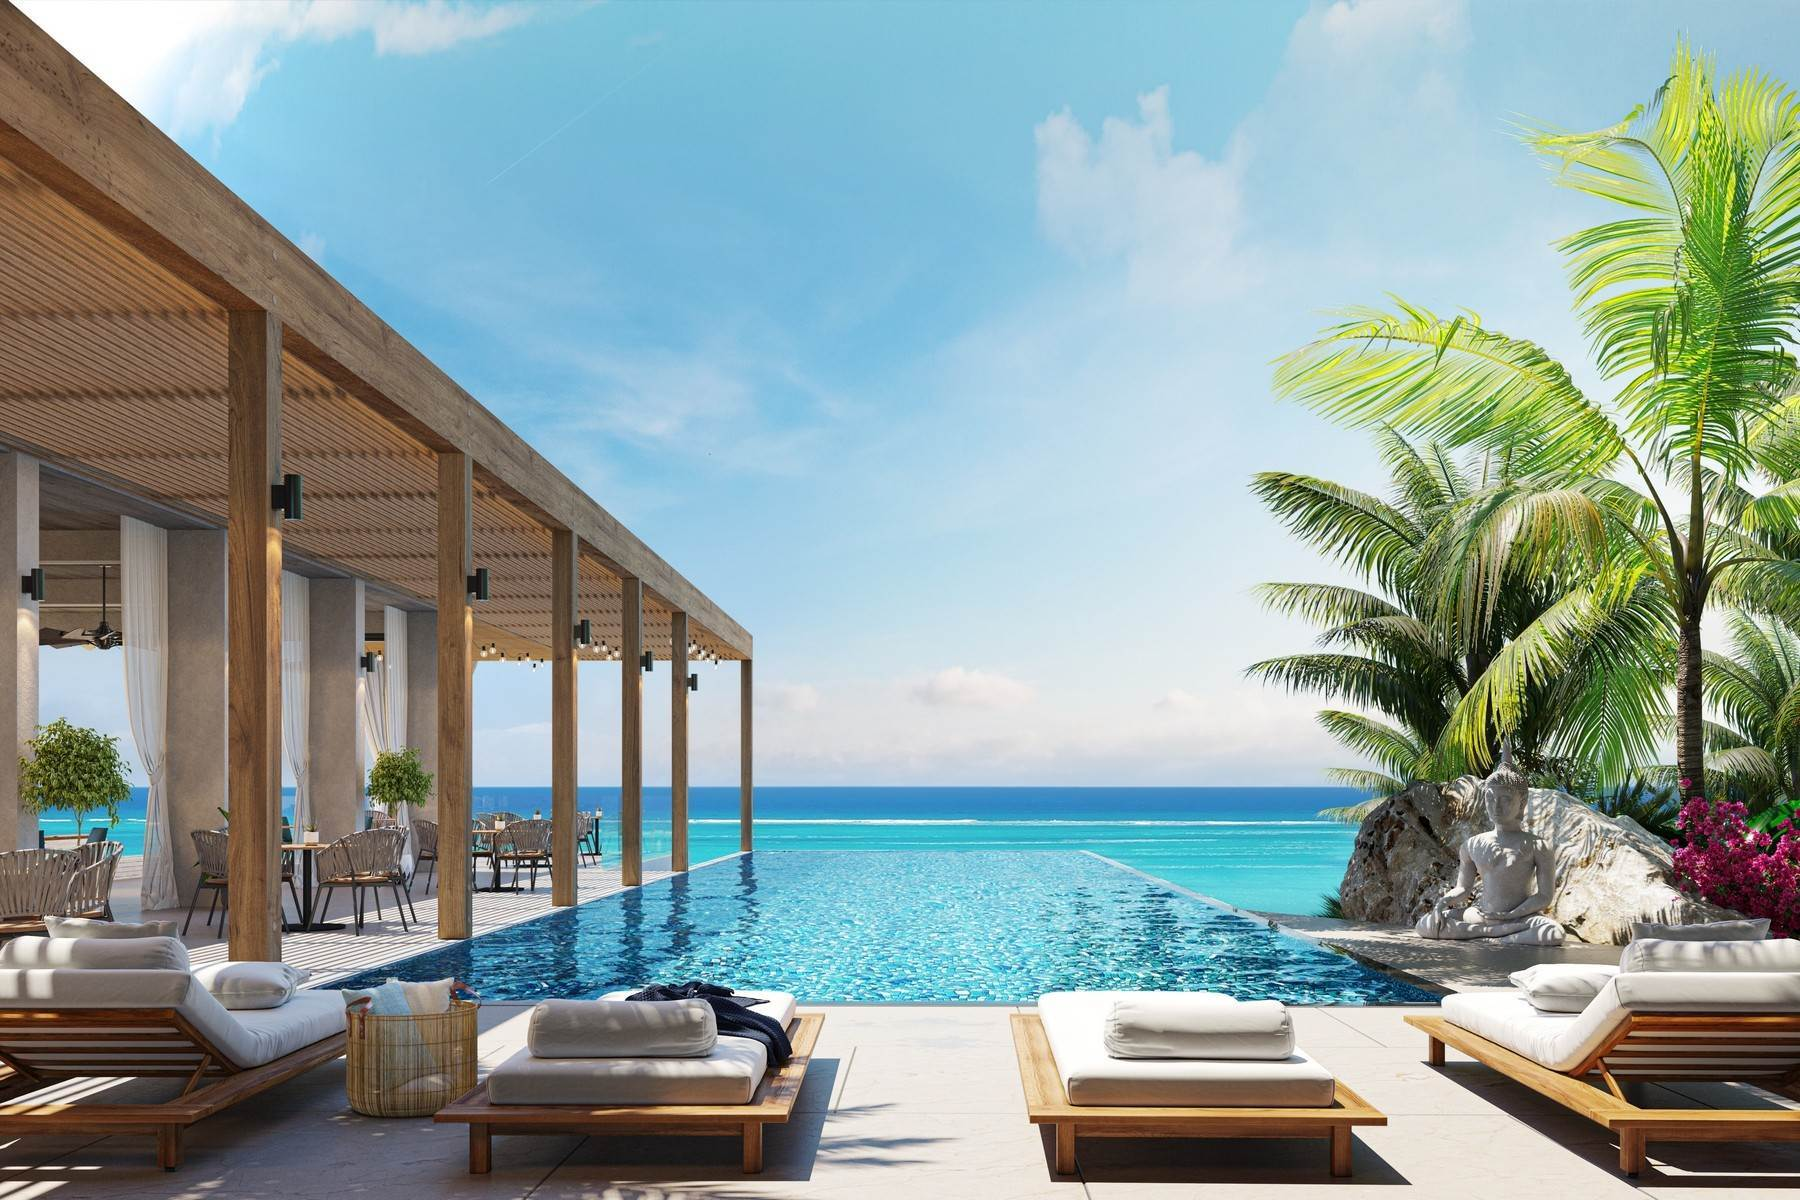 5. Condominiums for Sale at The Bight, Providenciales Turks And Caicos Islands